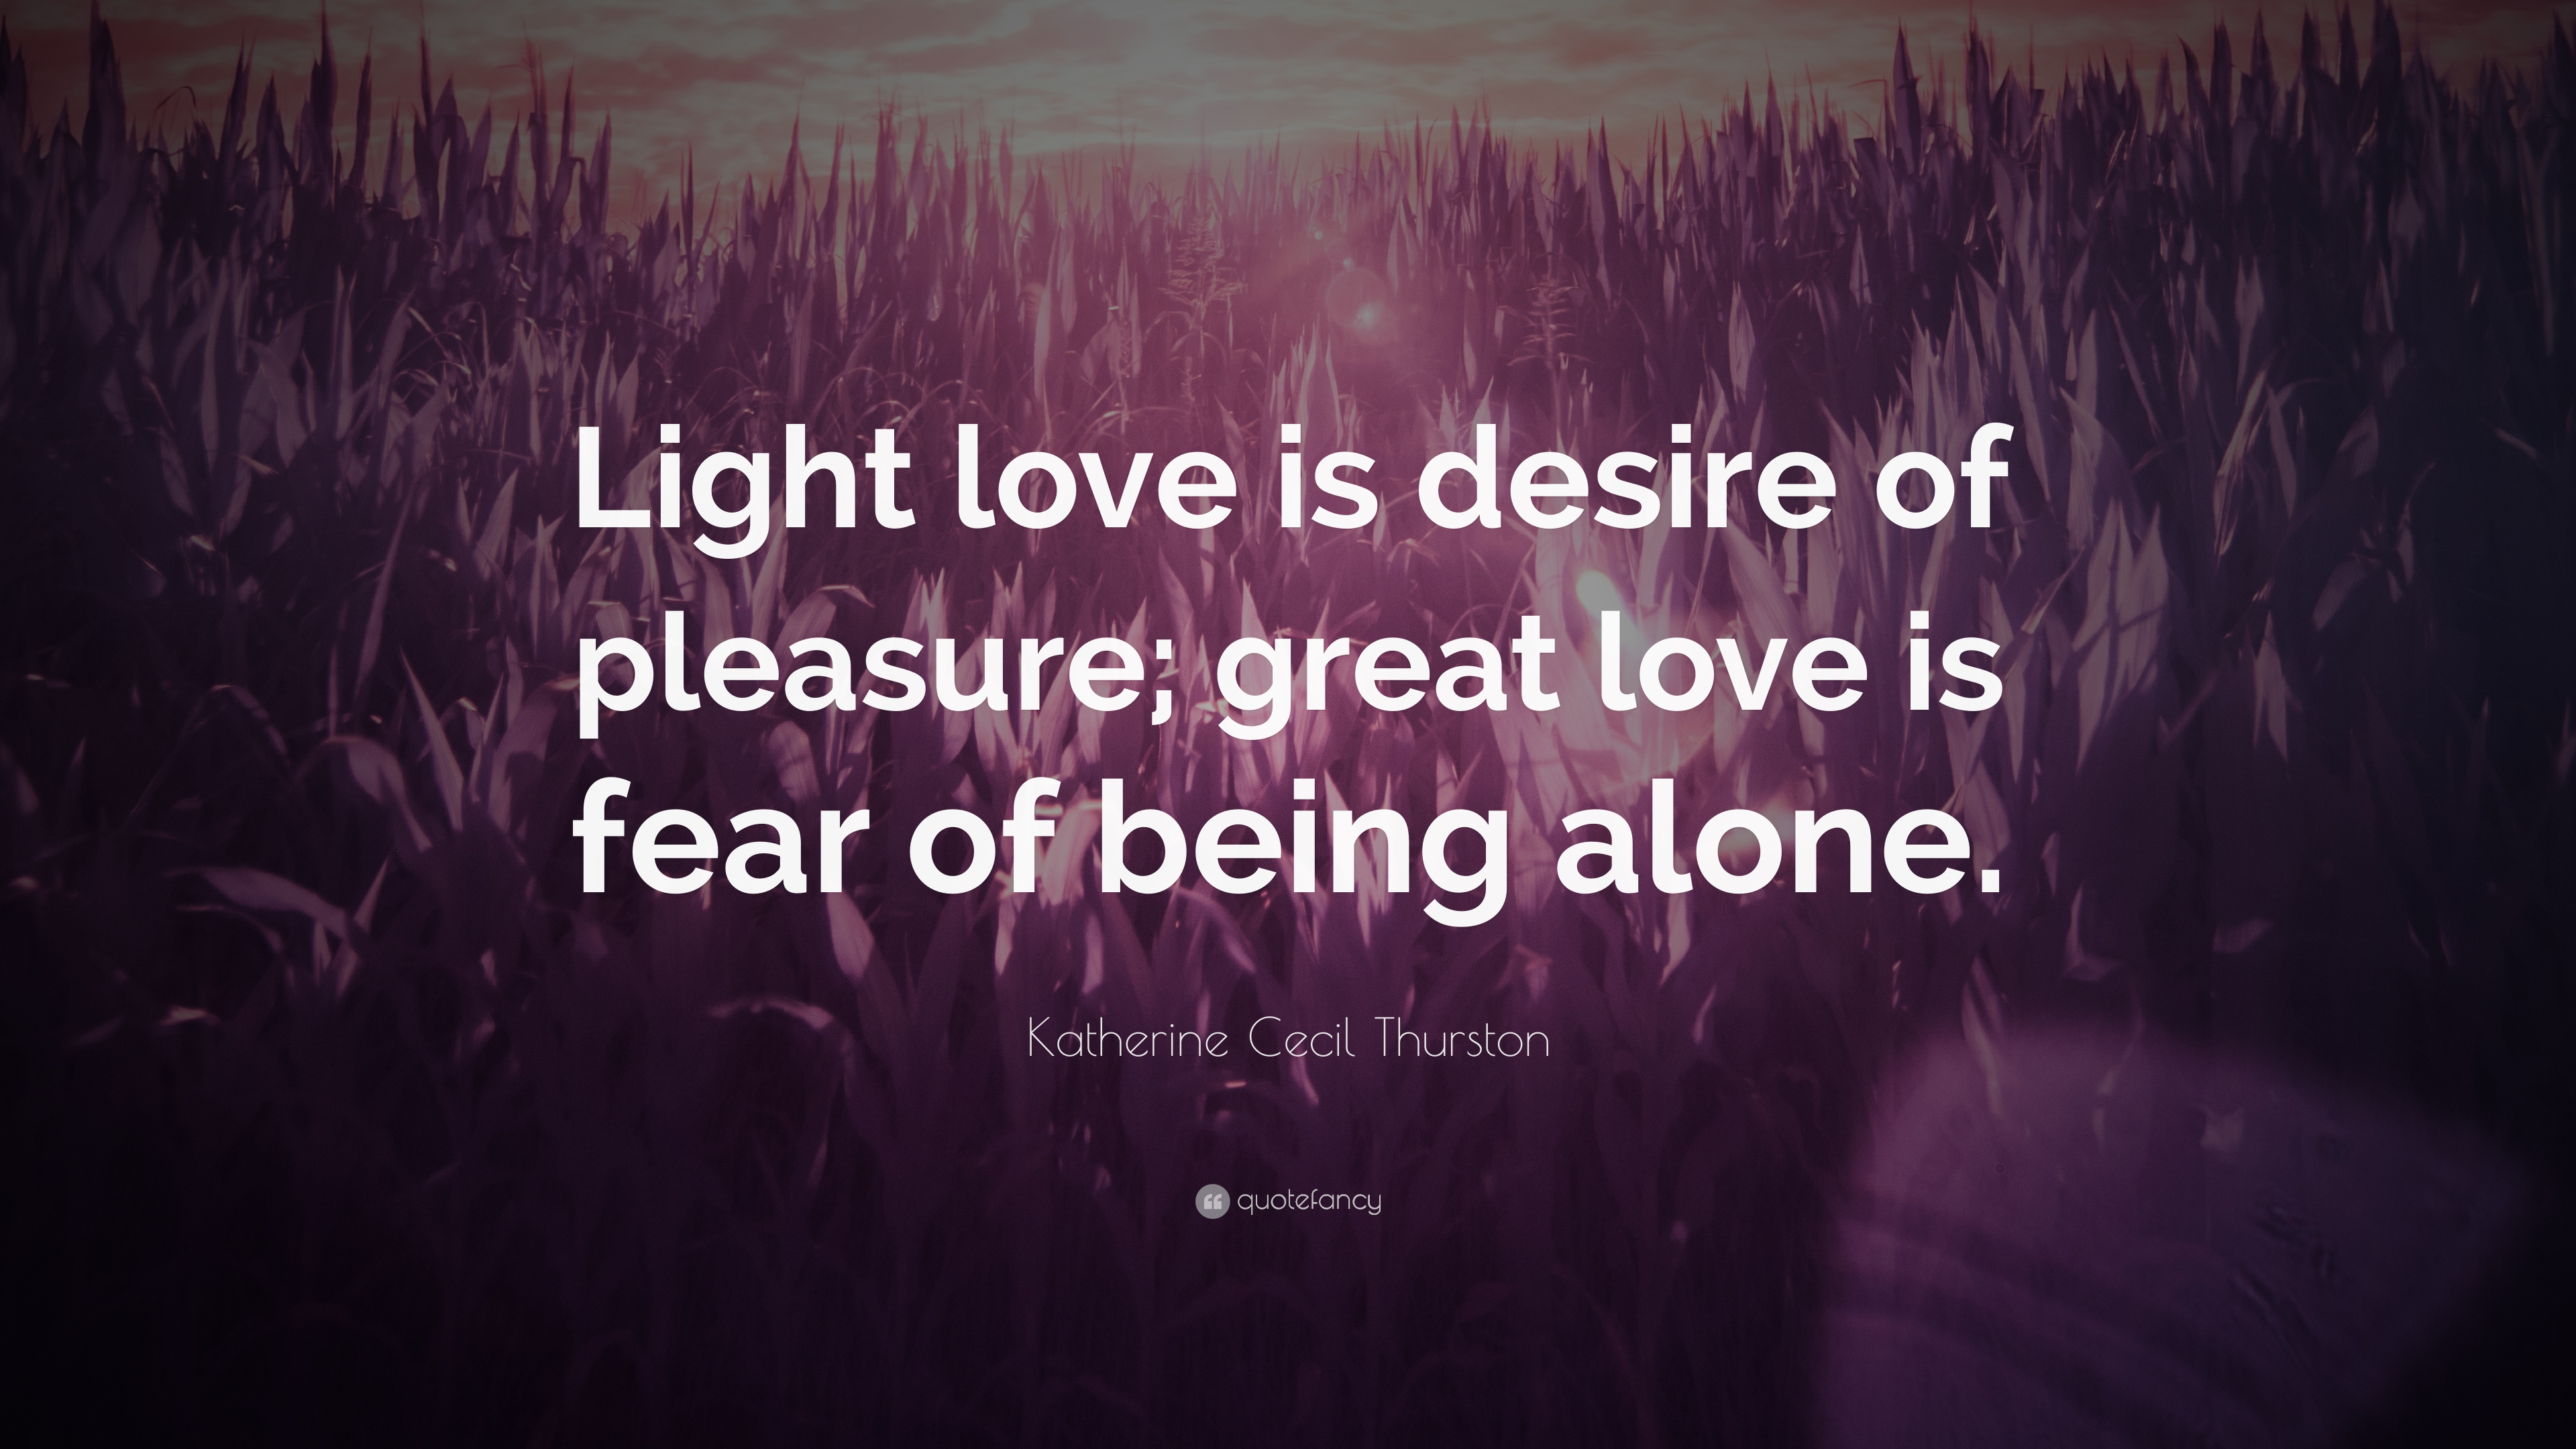 Love or fear of being alone